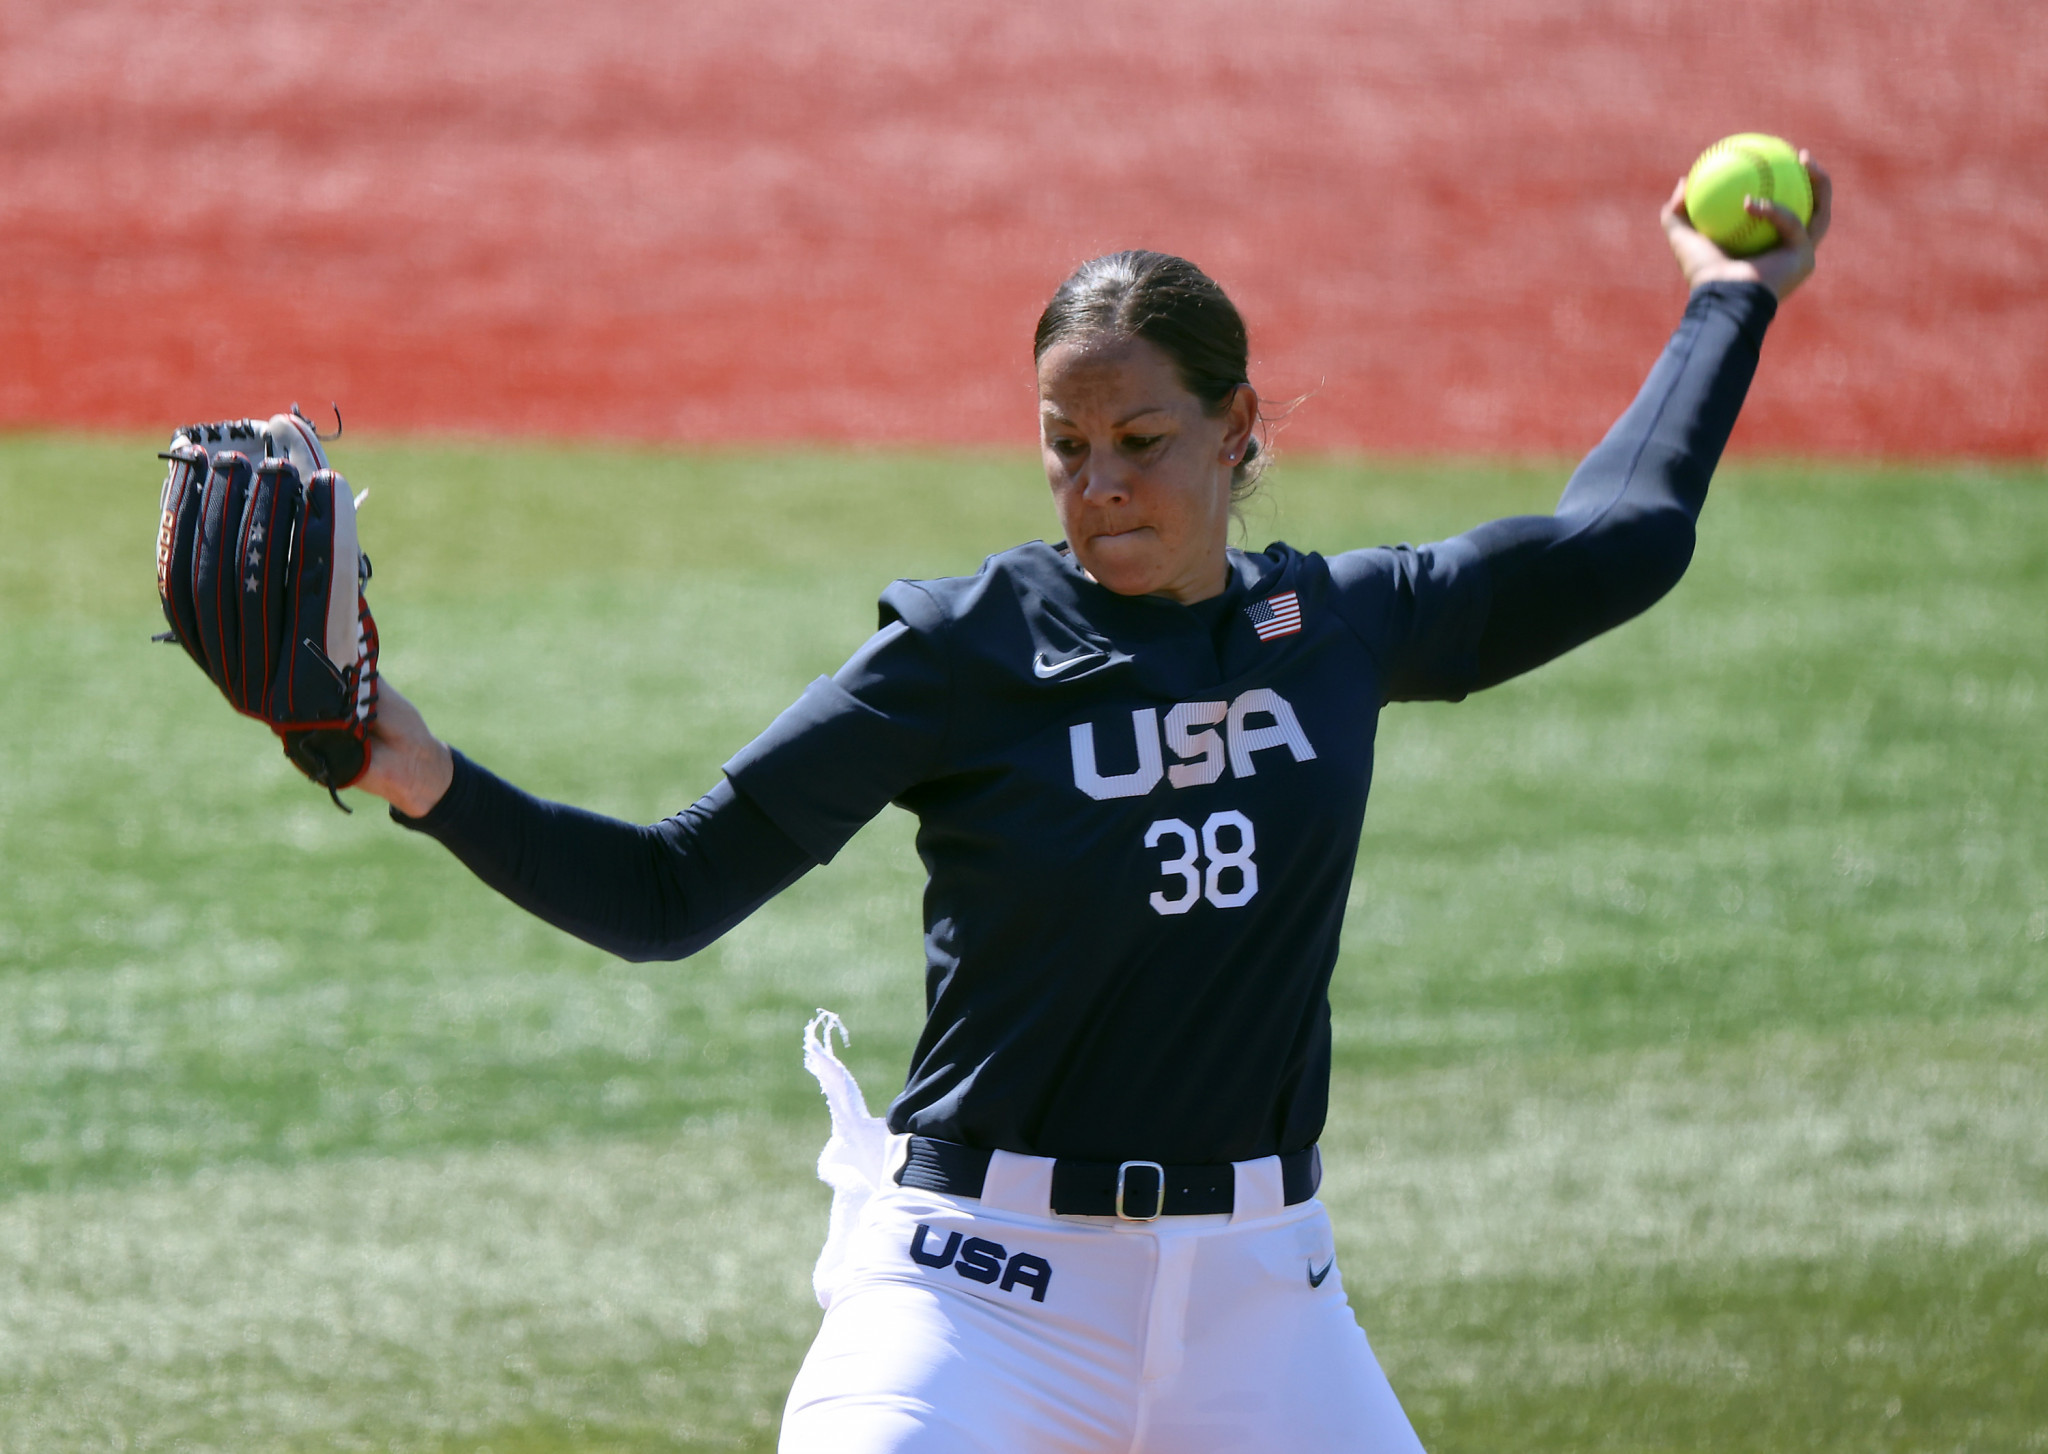 Osterman retires for second time after winning third softball Olympic medal with US at Tokyo 2020